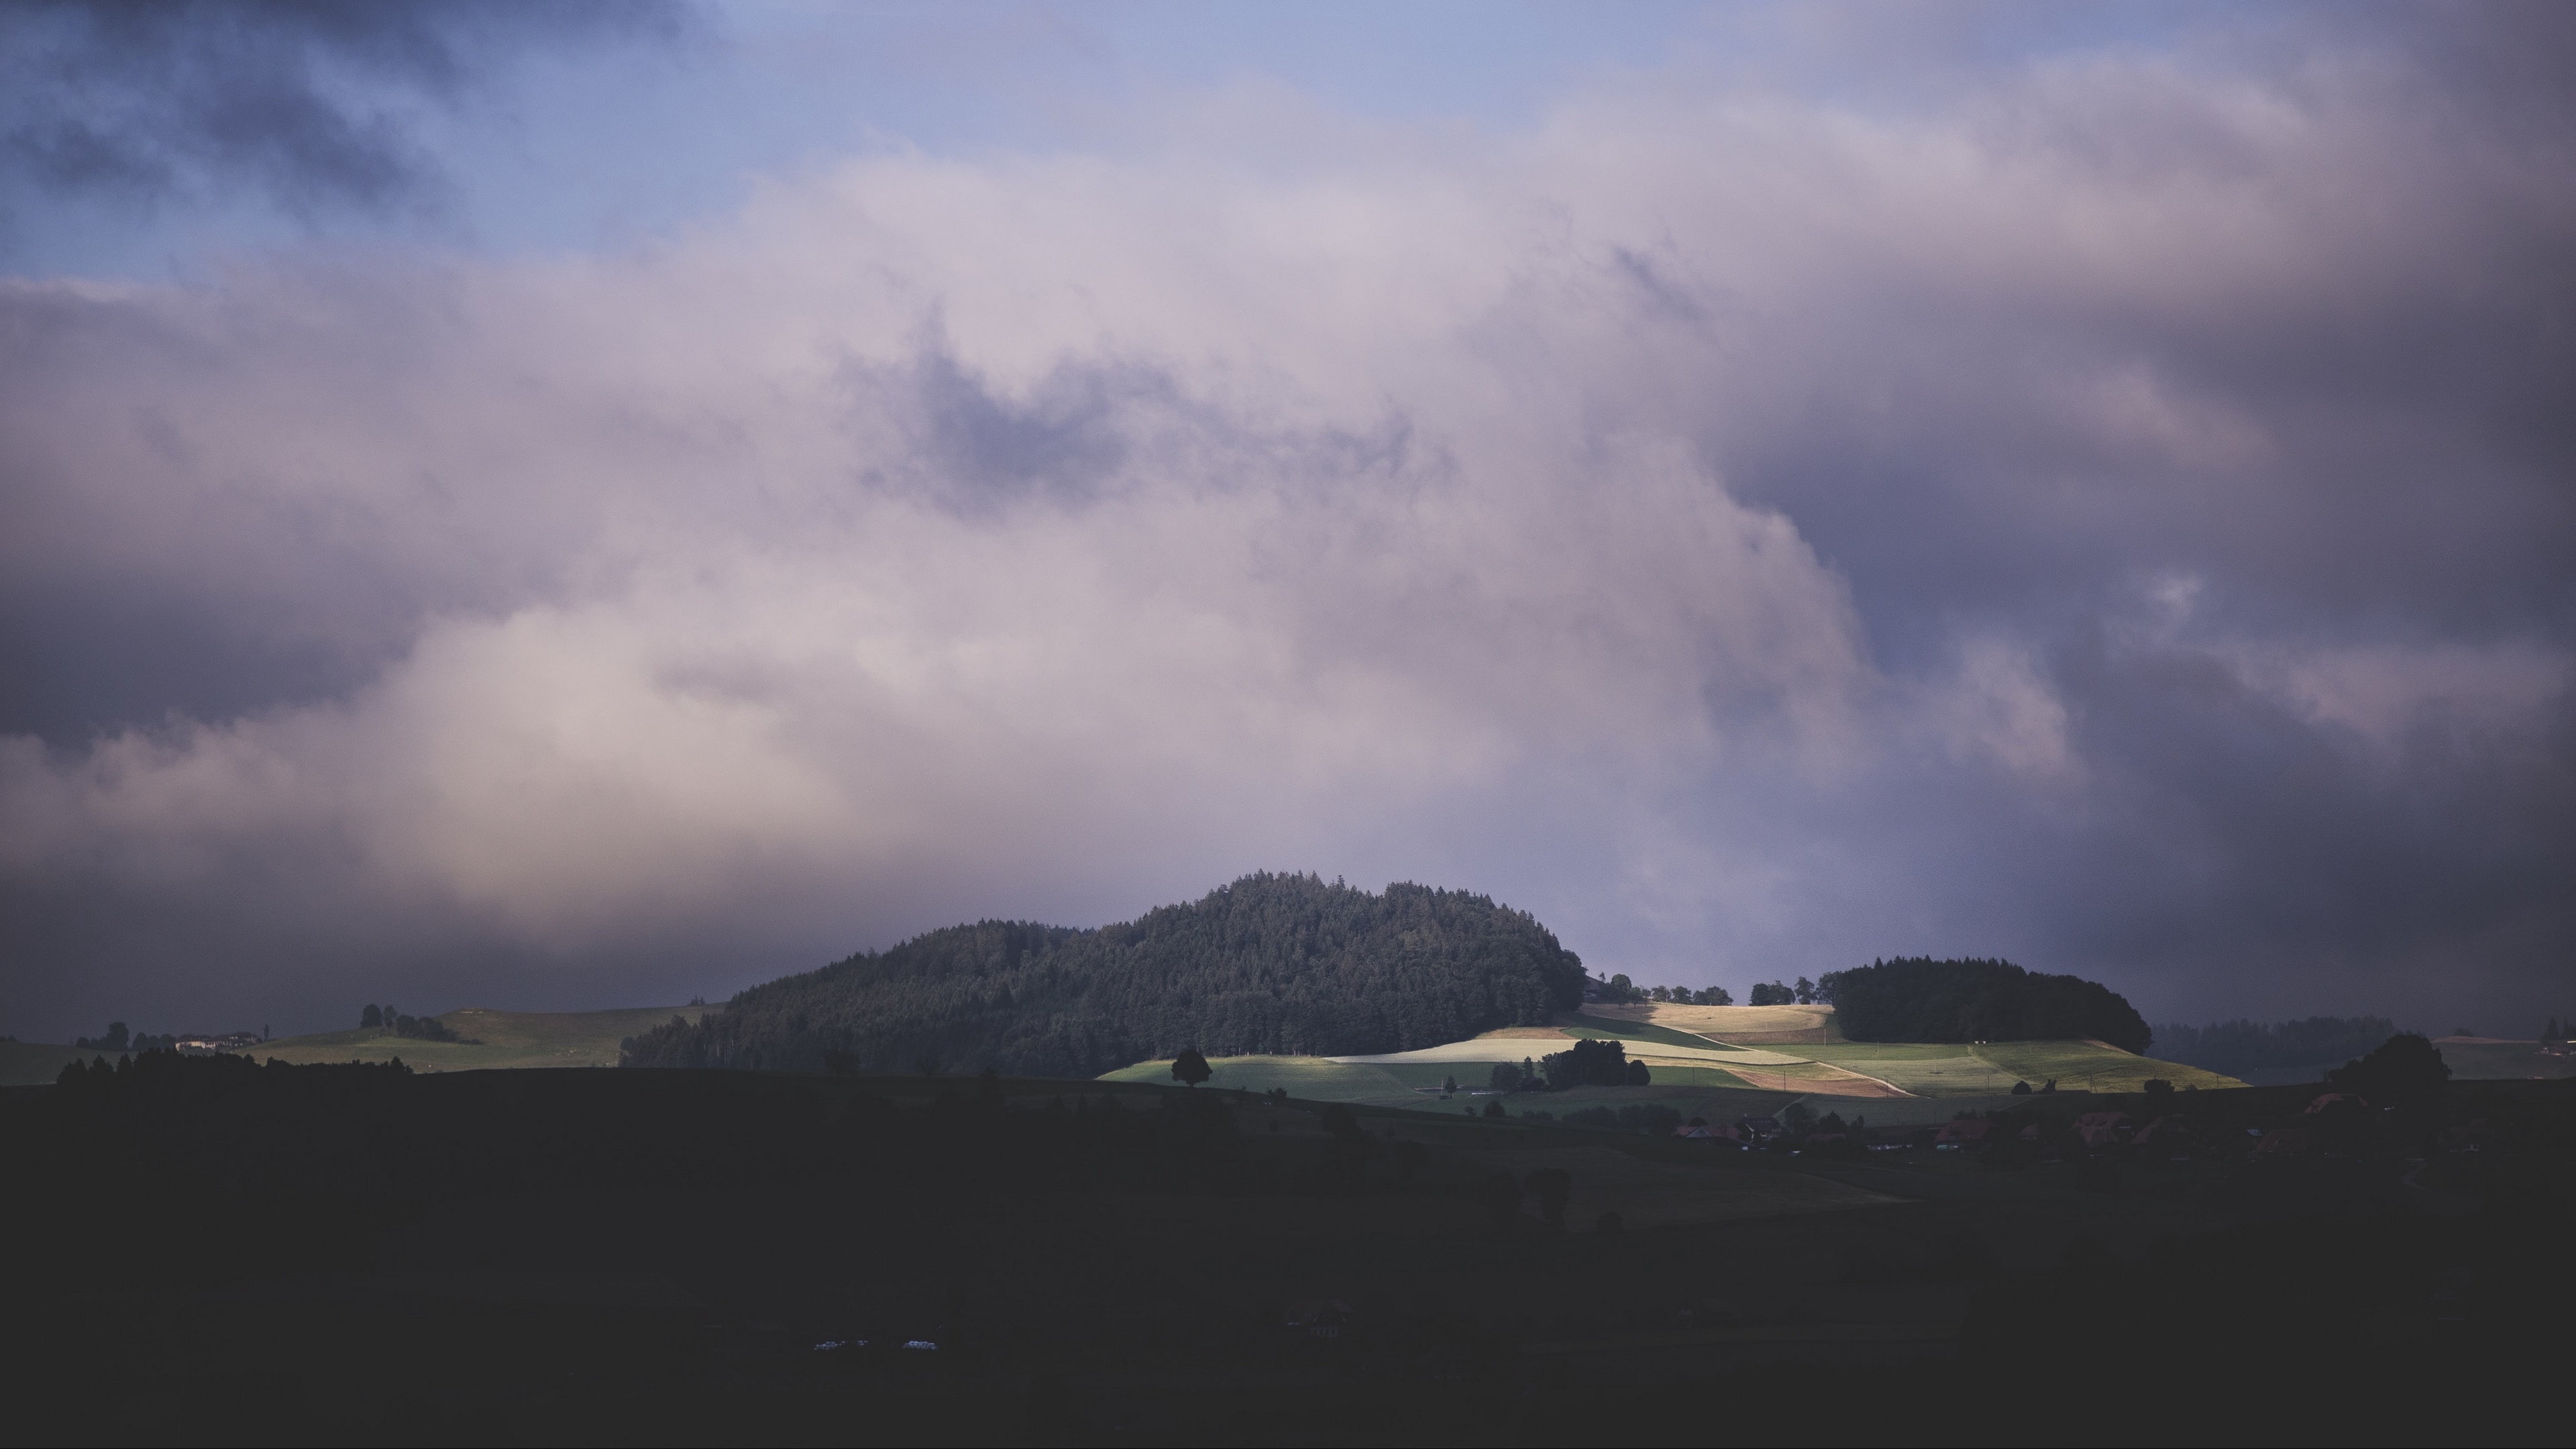 nature mountains field trees sky clouds 4k 1541116157 - nature, mountains, field, trees, sky, clouds 4k - Nature, Mountains, Field